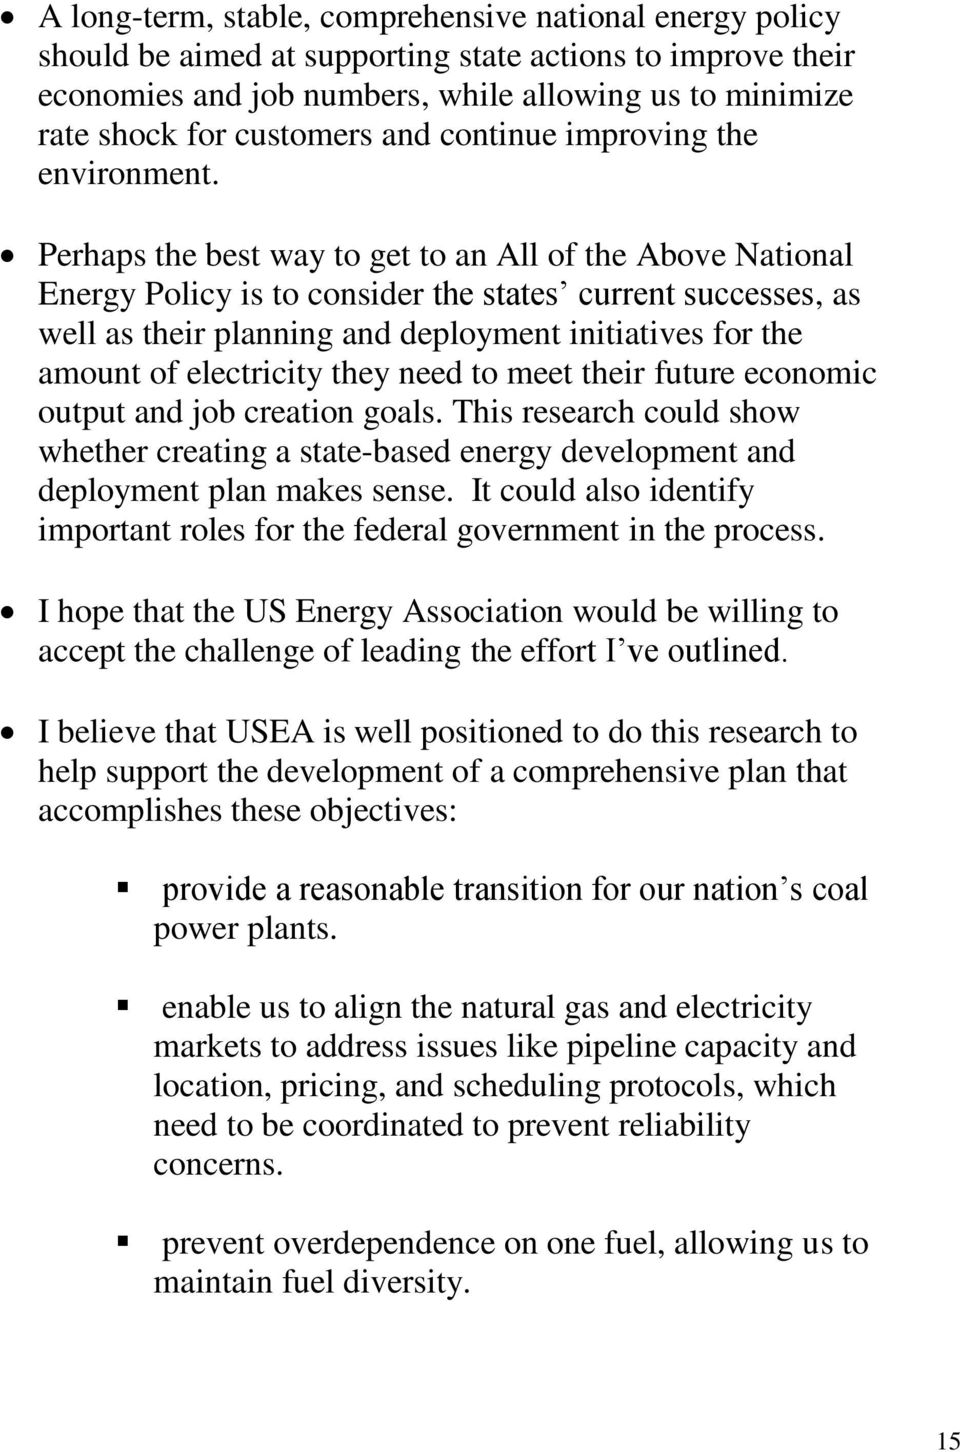 Perhaps the best way to get to an All of the Above National Energy Policy is to consider the states current successes, as well as their planning and deployment initiatives for the amount of